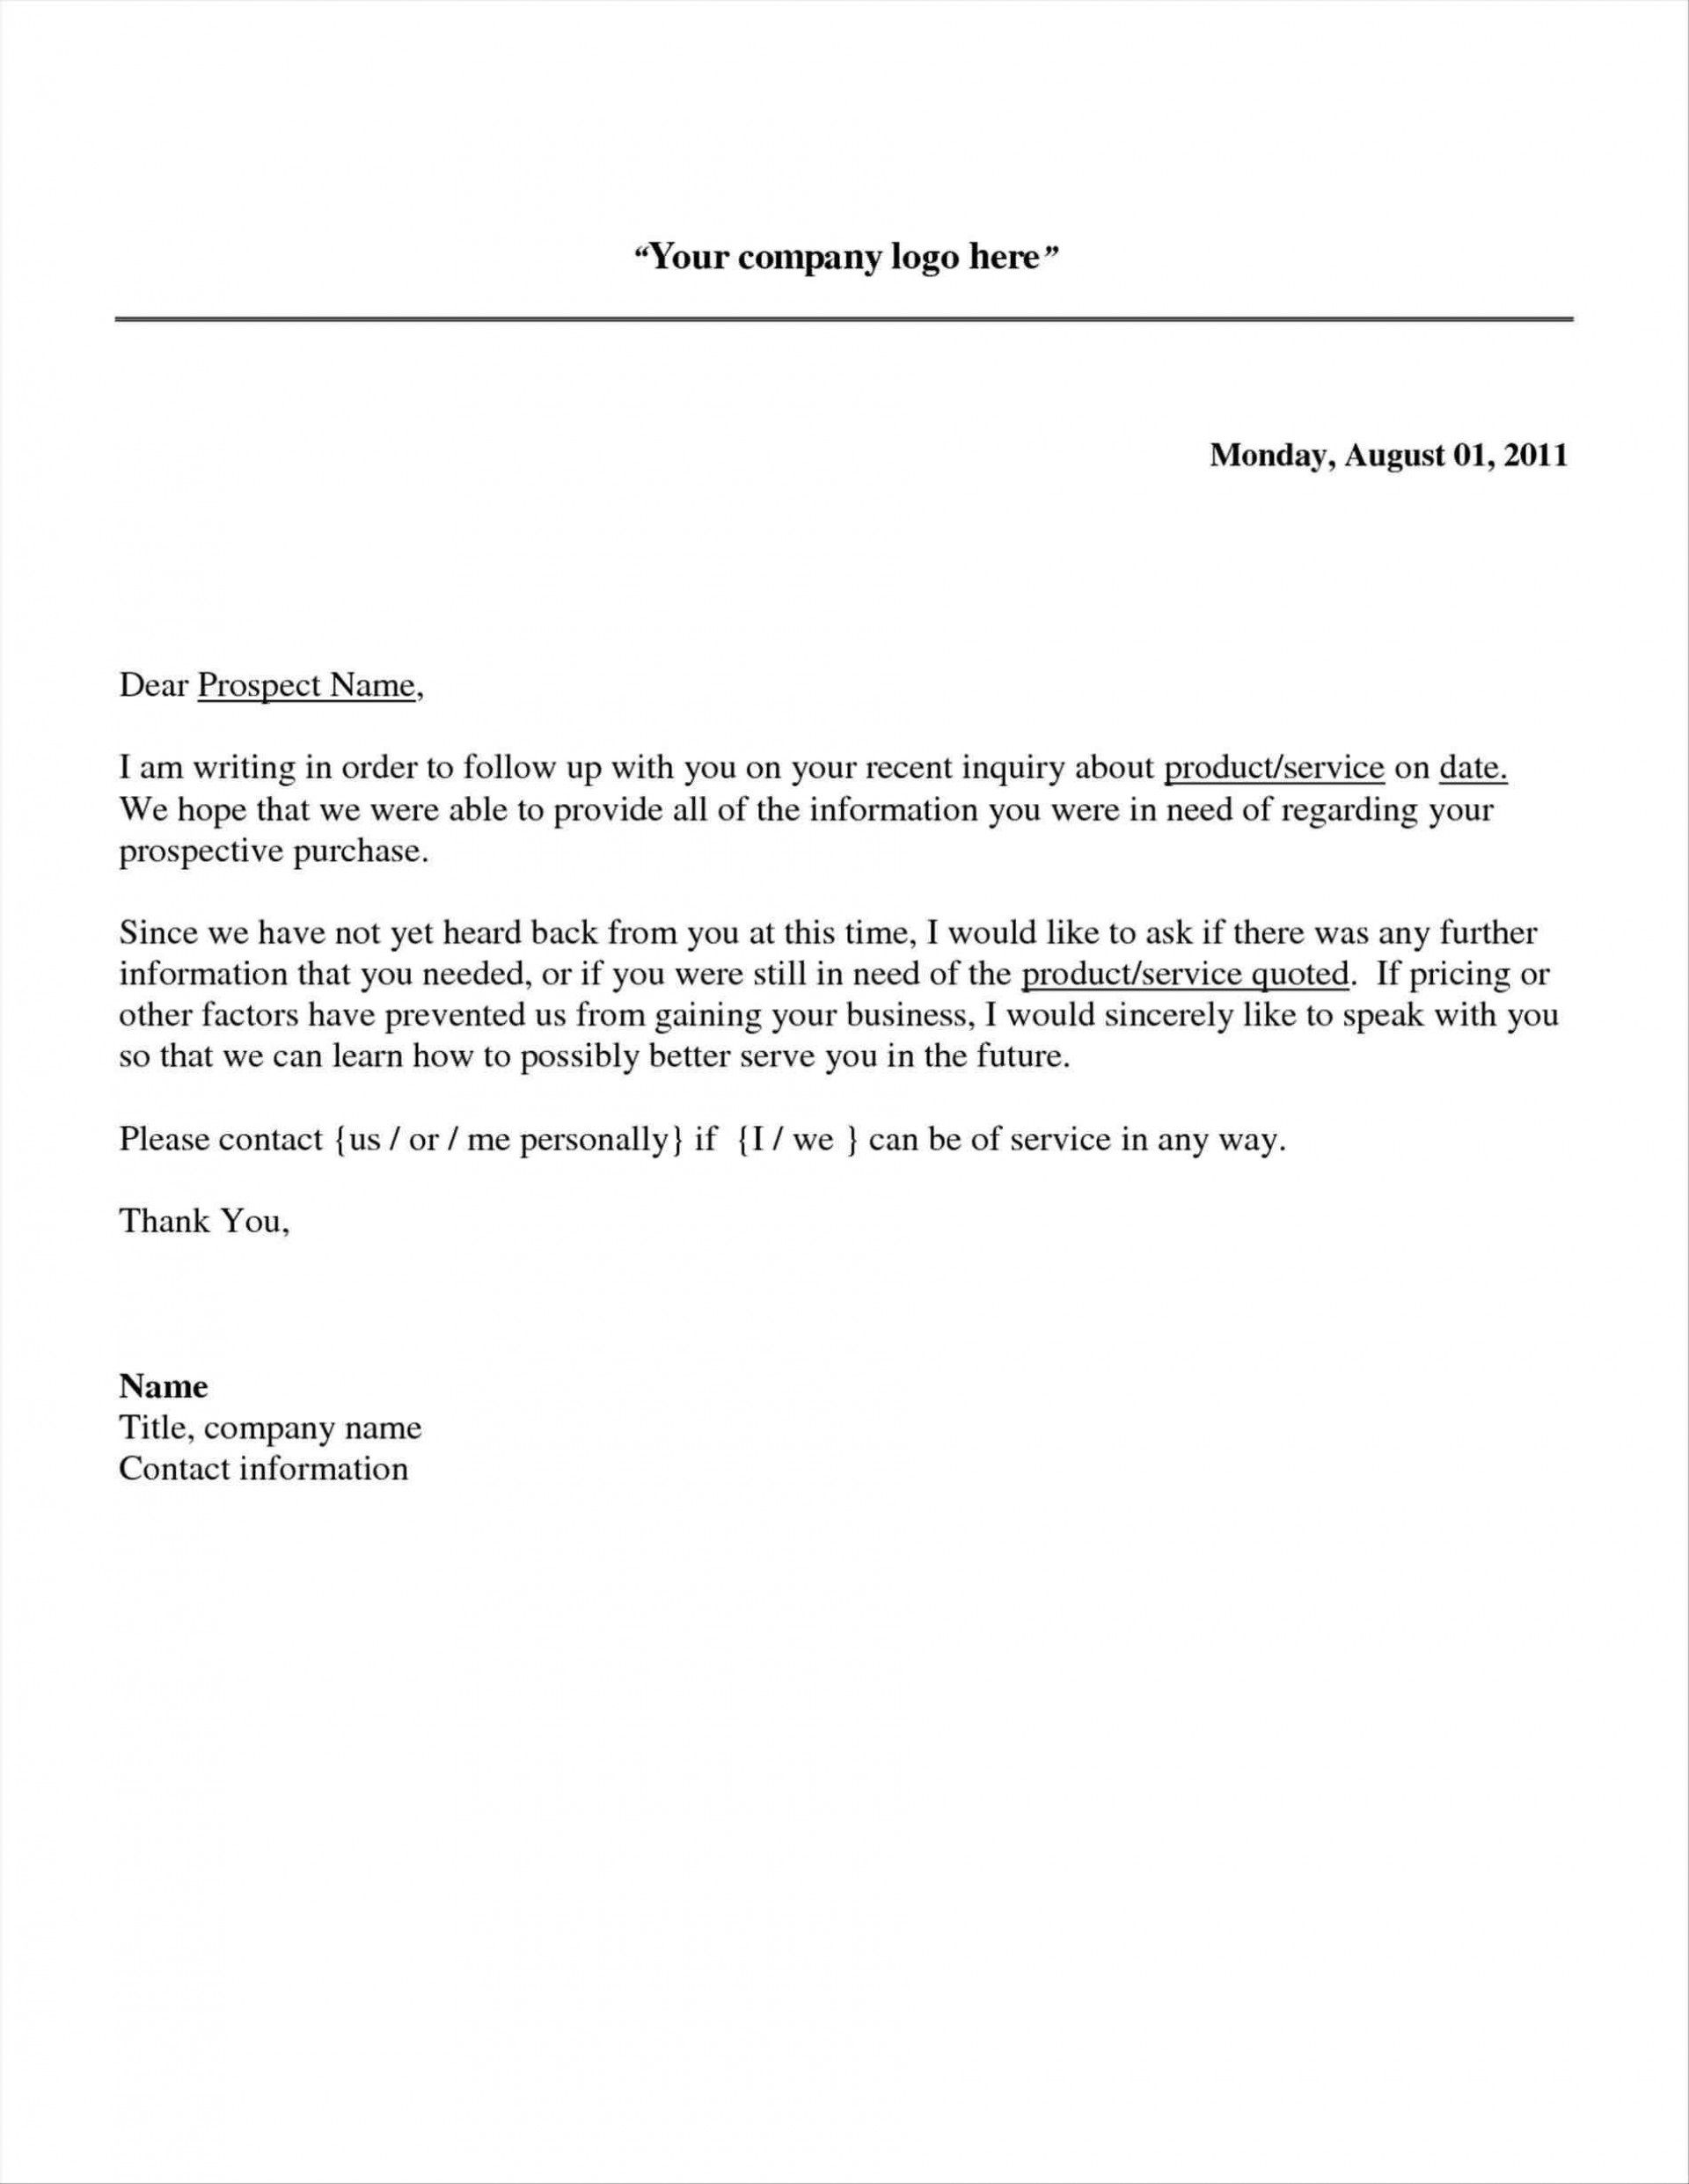 005 Unforgettable Follow Up Email Sample After No Response Template Inspiration Full